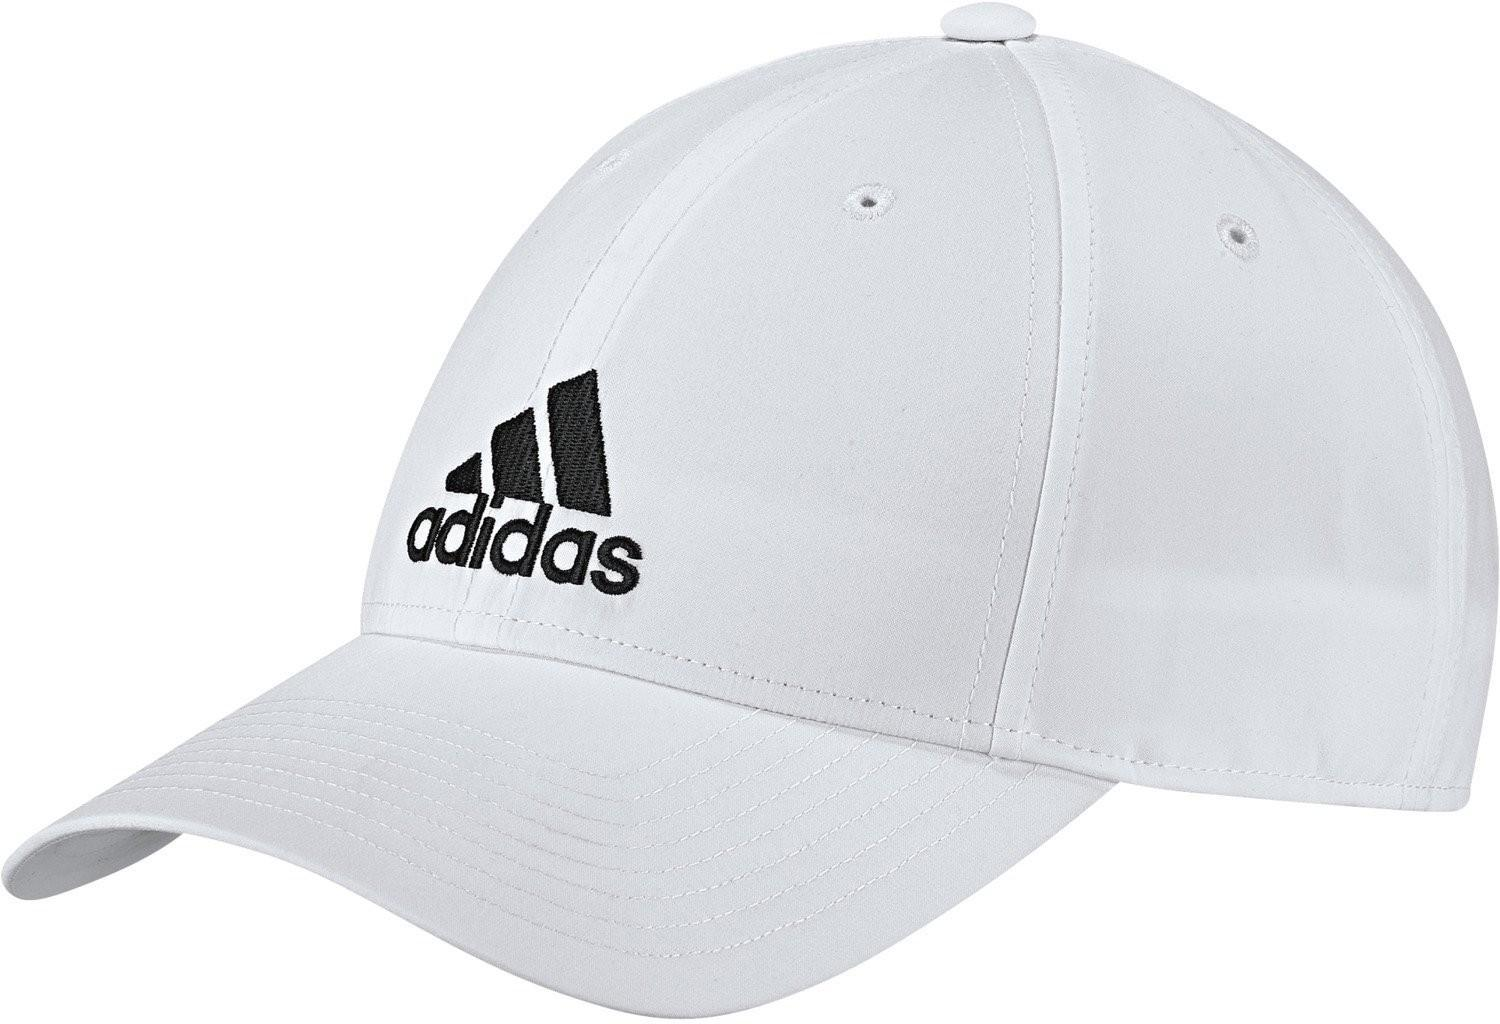 Теннисная кепка мужская Adidas 6 Panel Classic Lightweight Metal Badge white/white/black